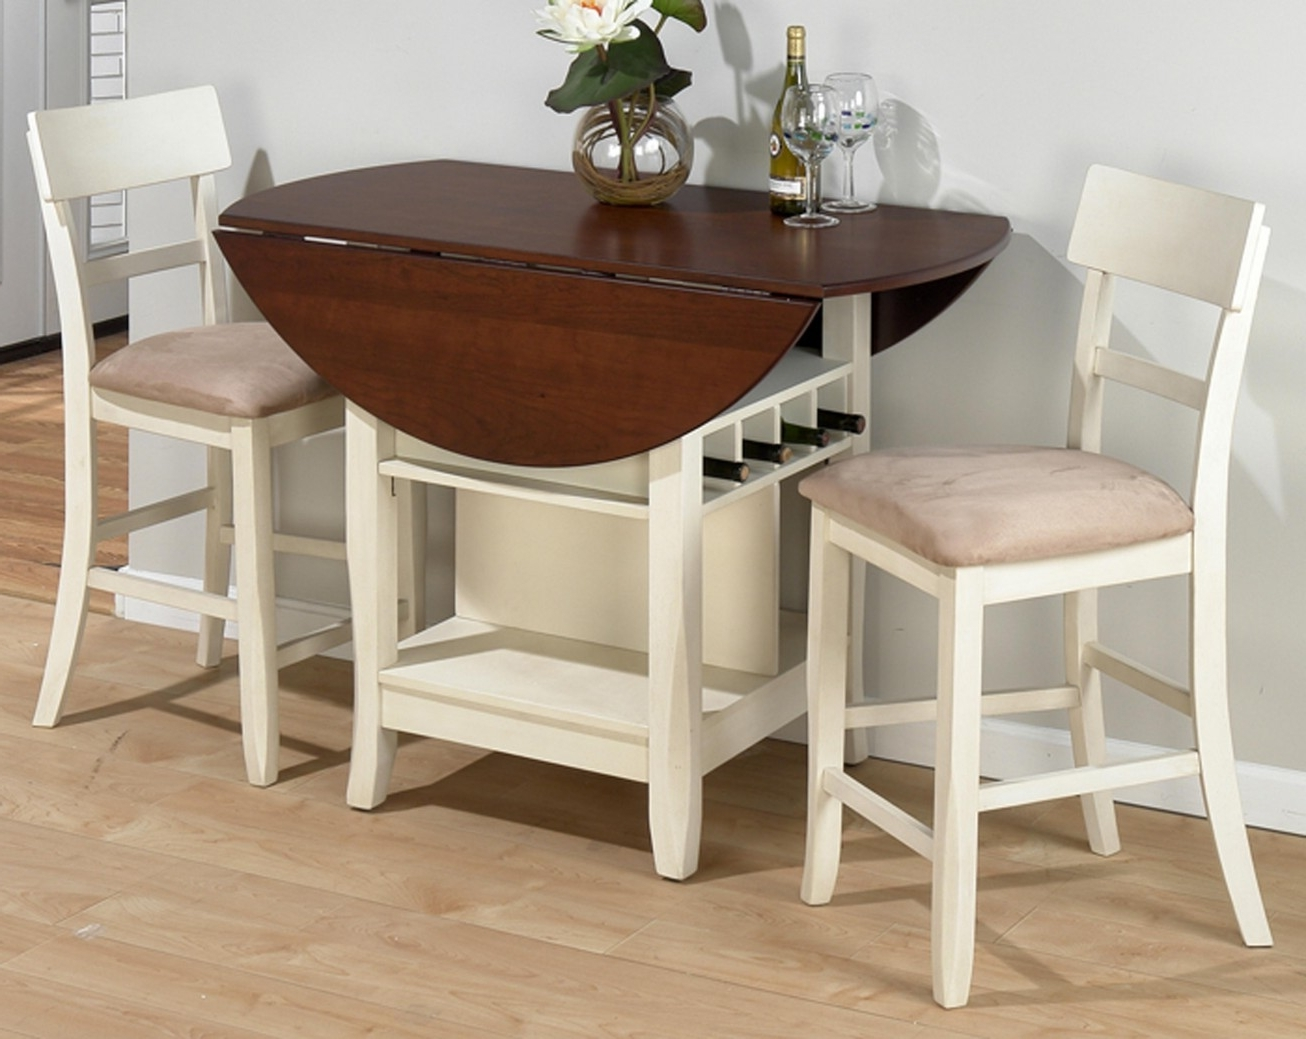 Popular Ikea Dining Table Set Small Eat In Kitchen Ideas 2 Seater For Sale With Dining Tables With 2 Seater (View 16 of 25)